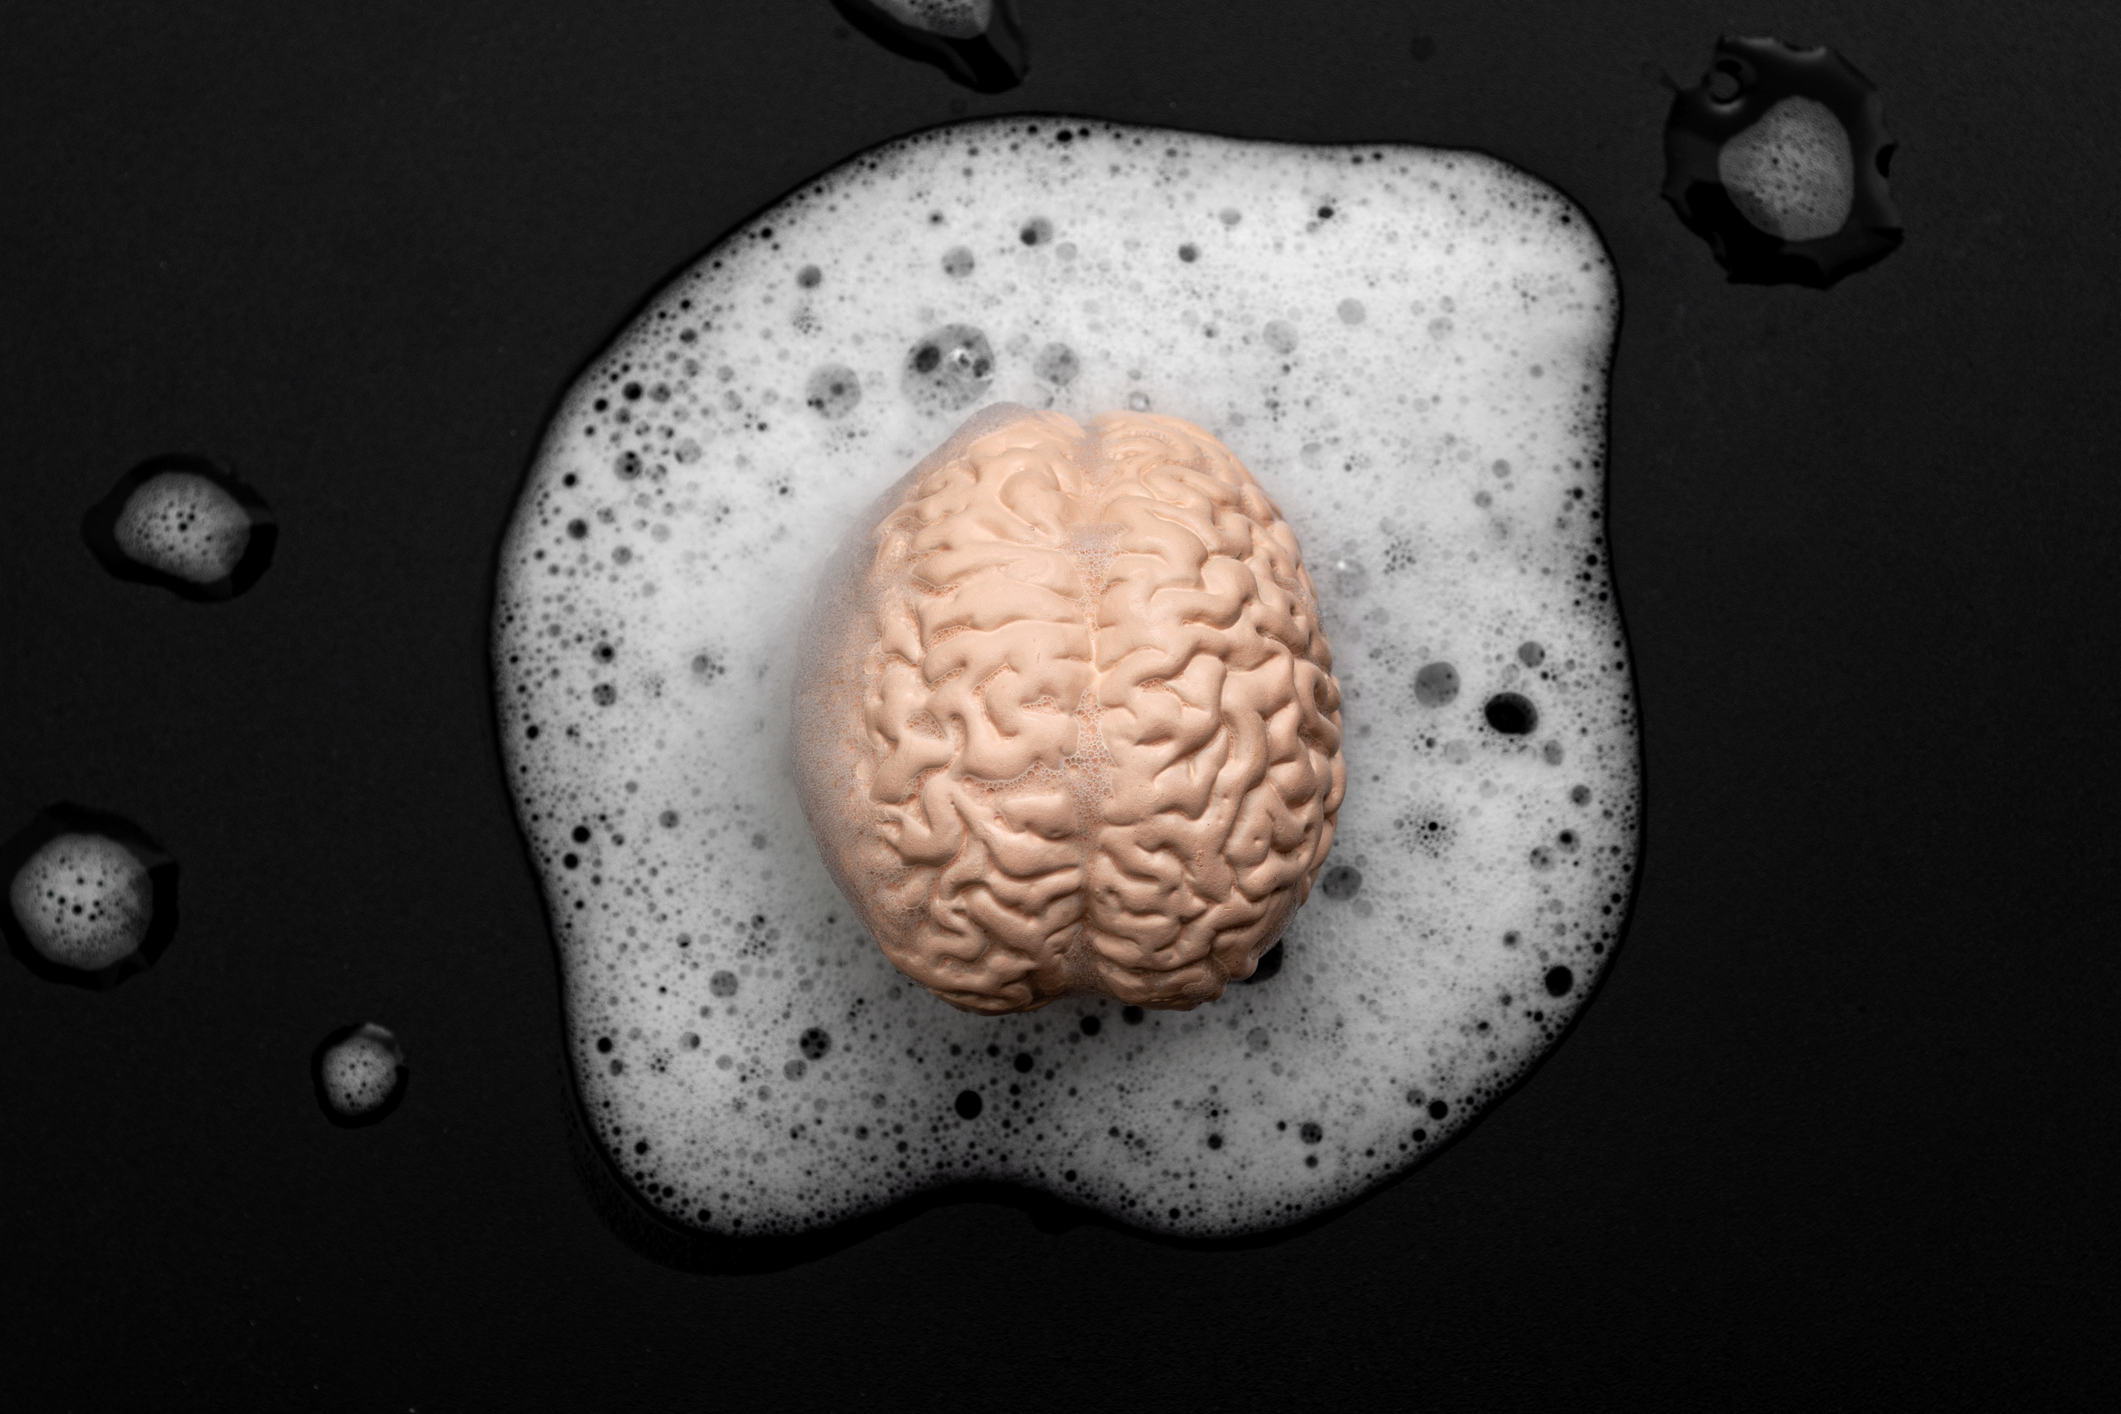 Harnessing the brain's cleaning mechanism may reverse Alzheimer's